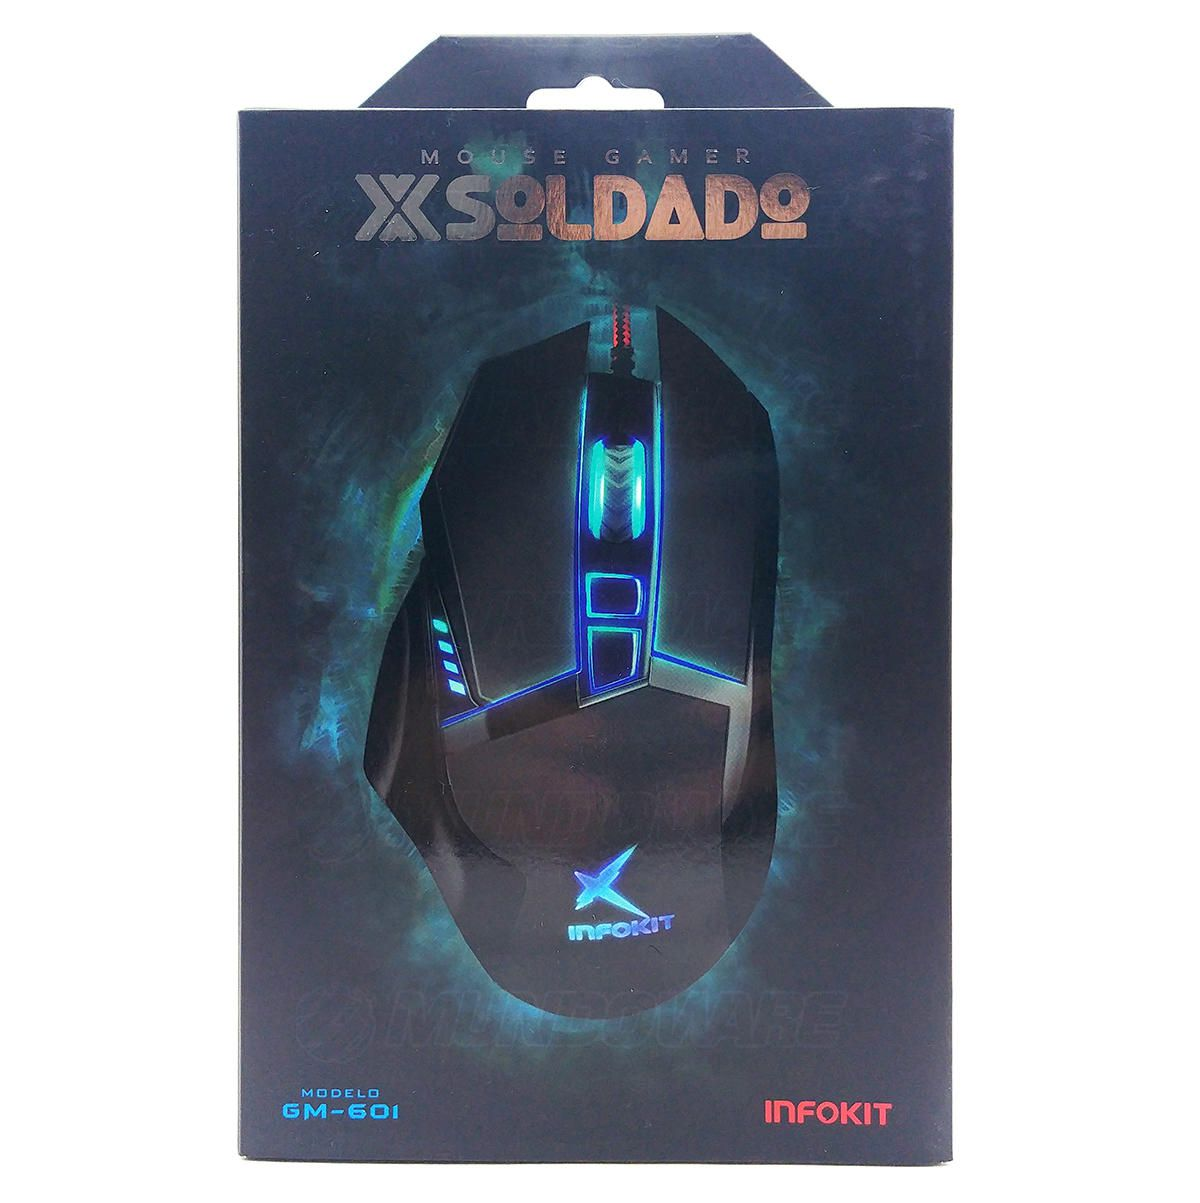 Mouse Gamer X Soldado GM-601